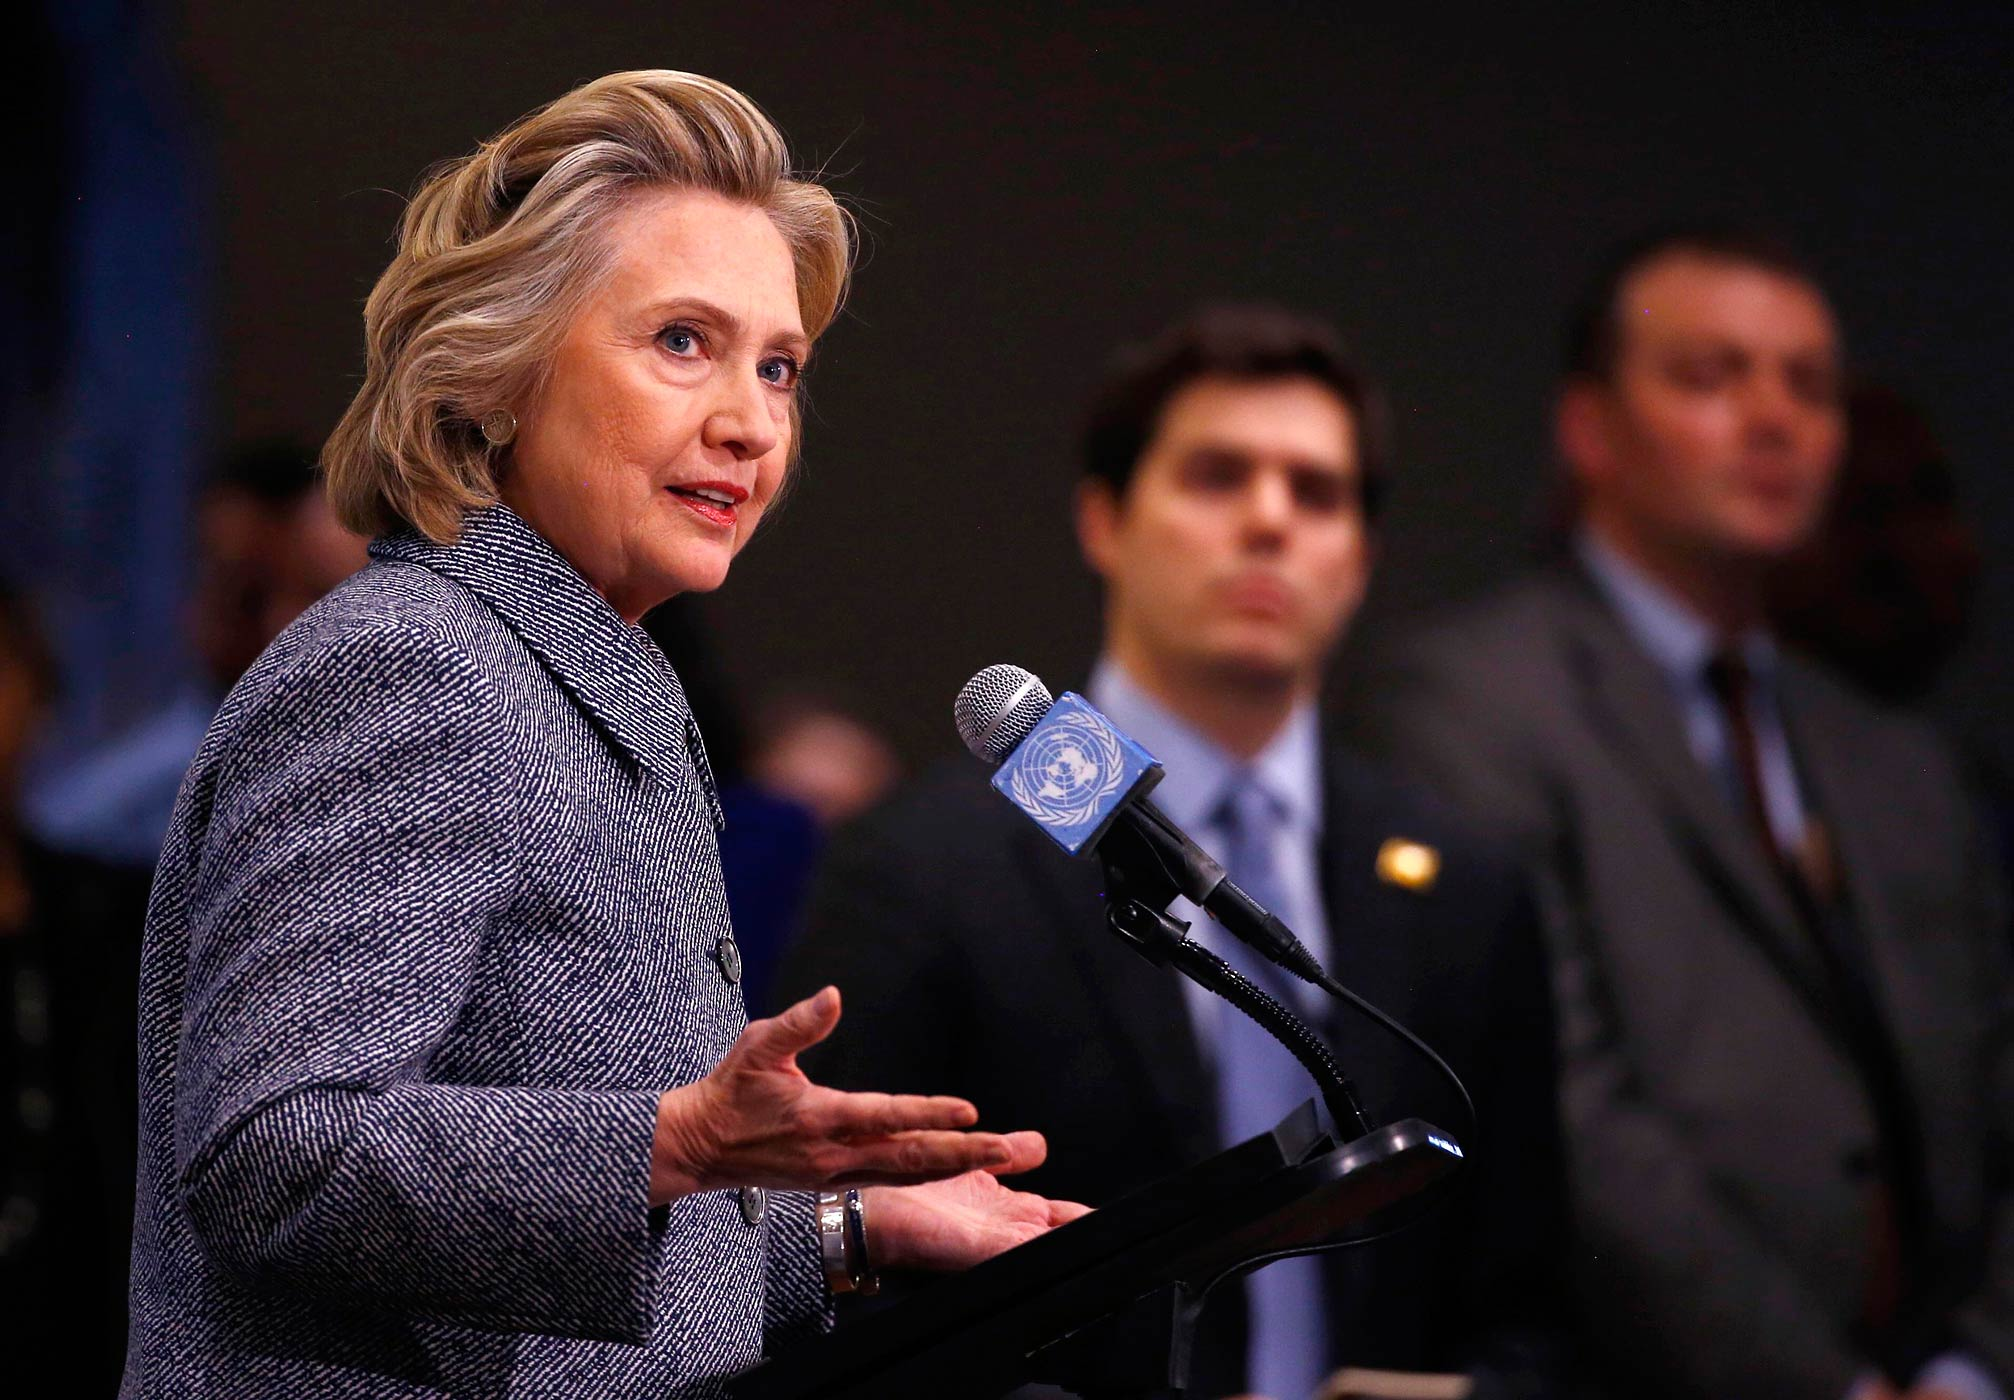 30 security incidents regarding handling of Hillary's emails